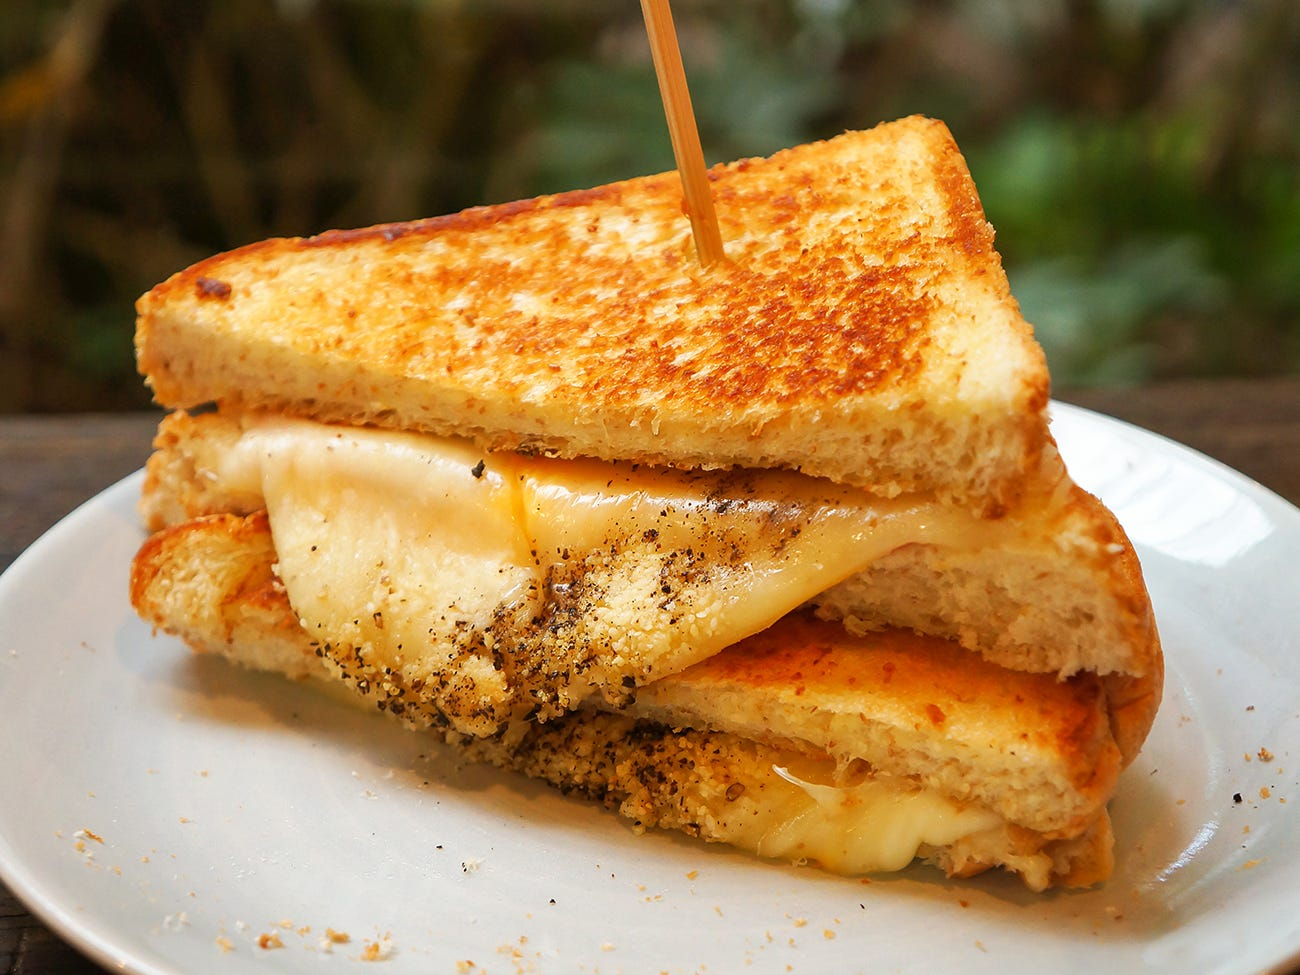 Grilled cheese et vin blanc